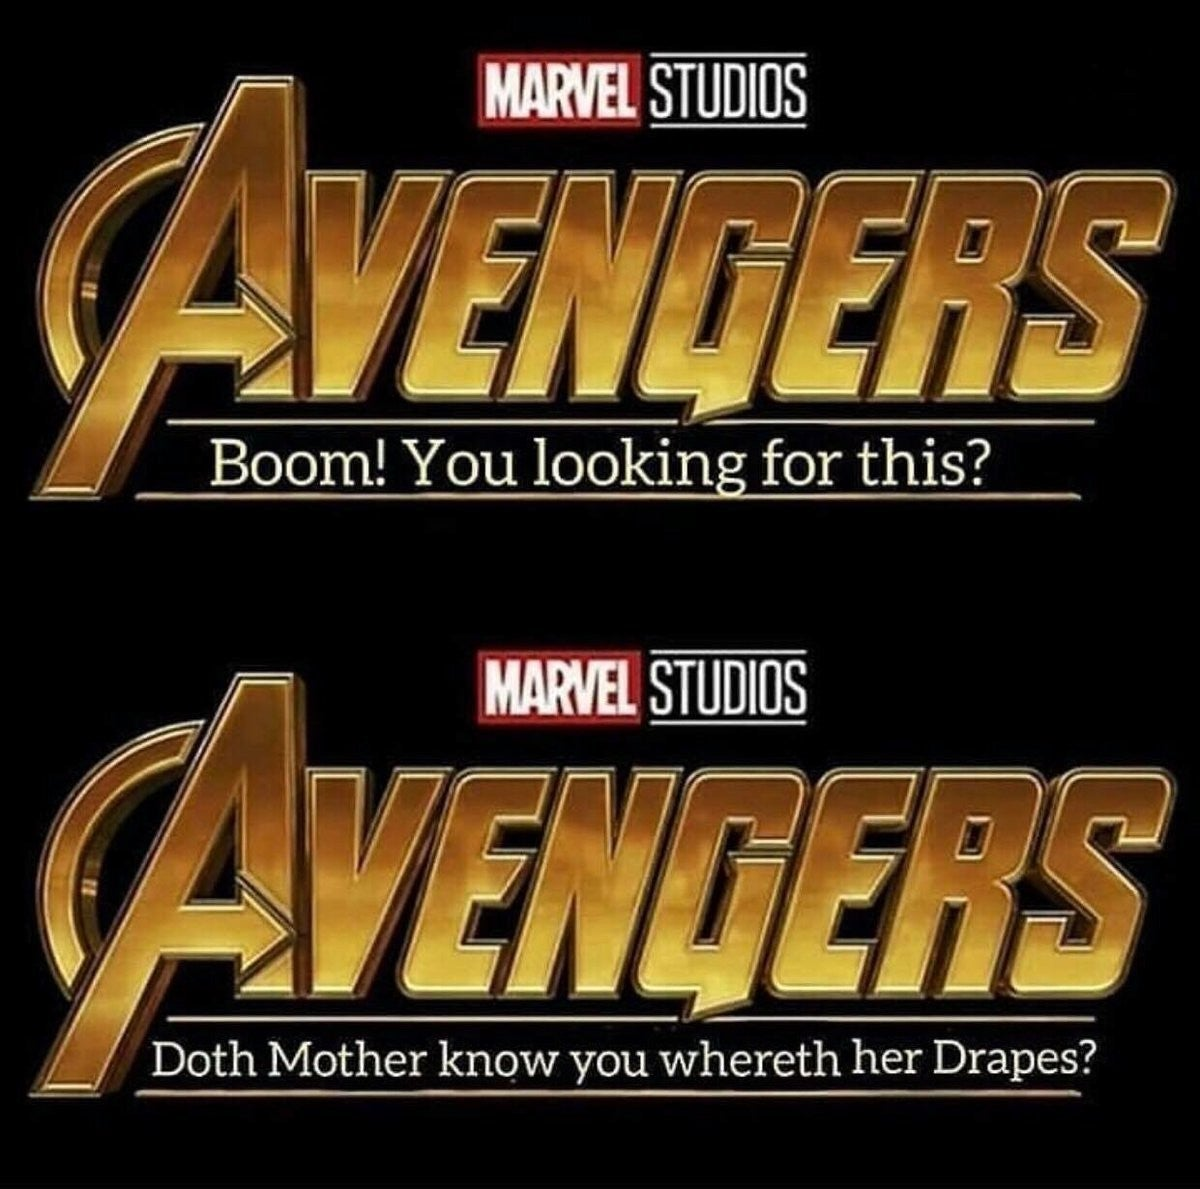 hilarious avengers 4 titles based on marvel film quotes go viral